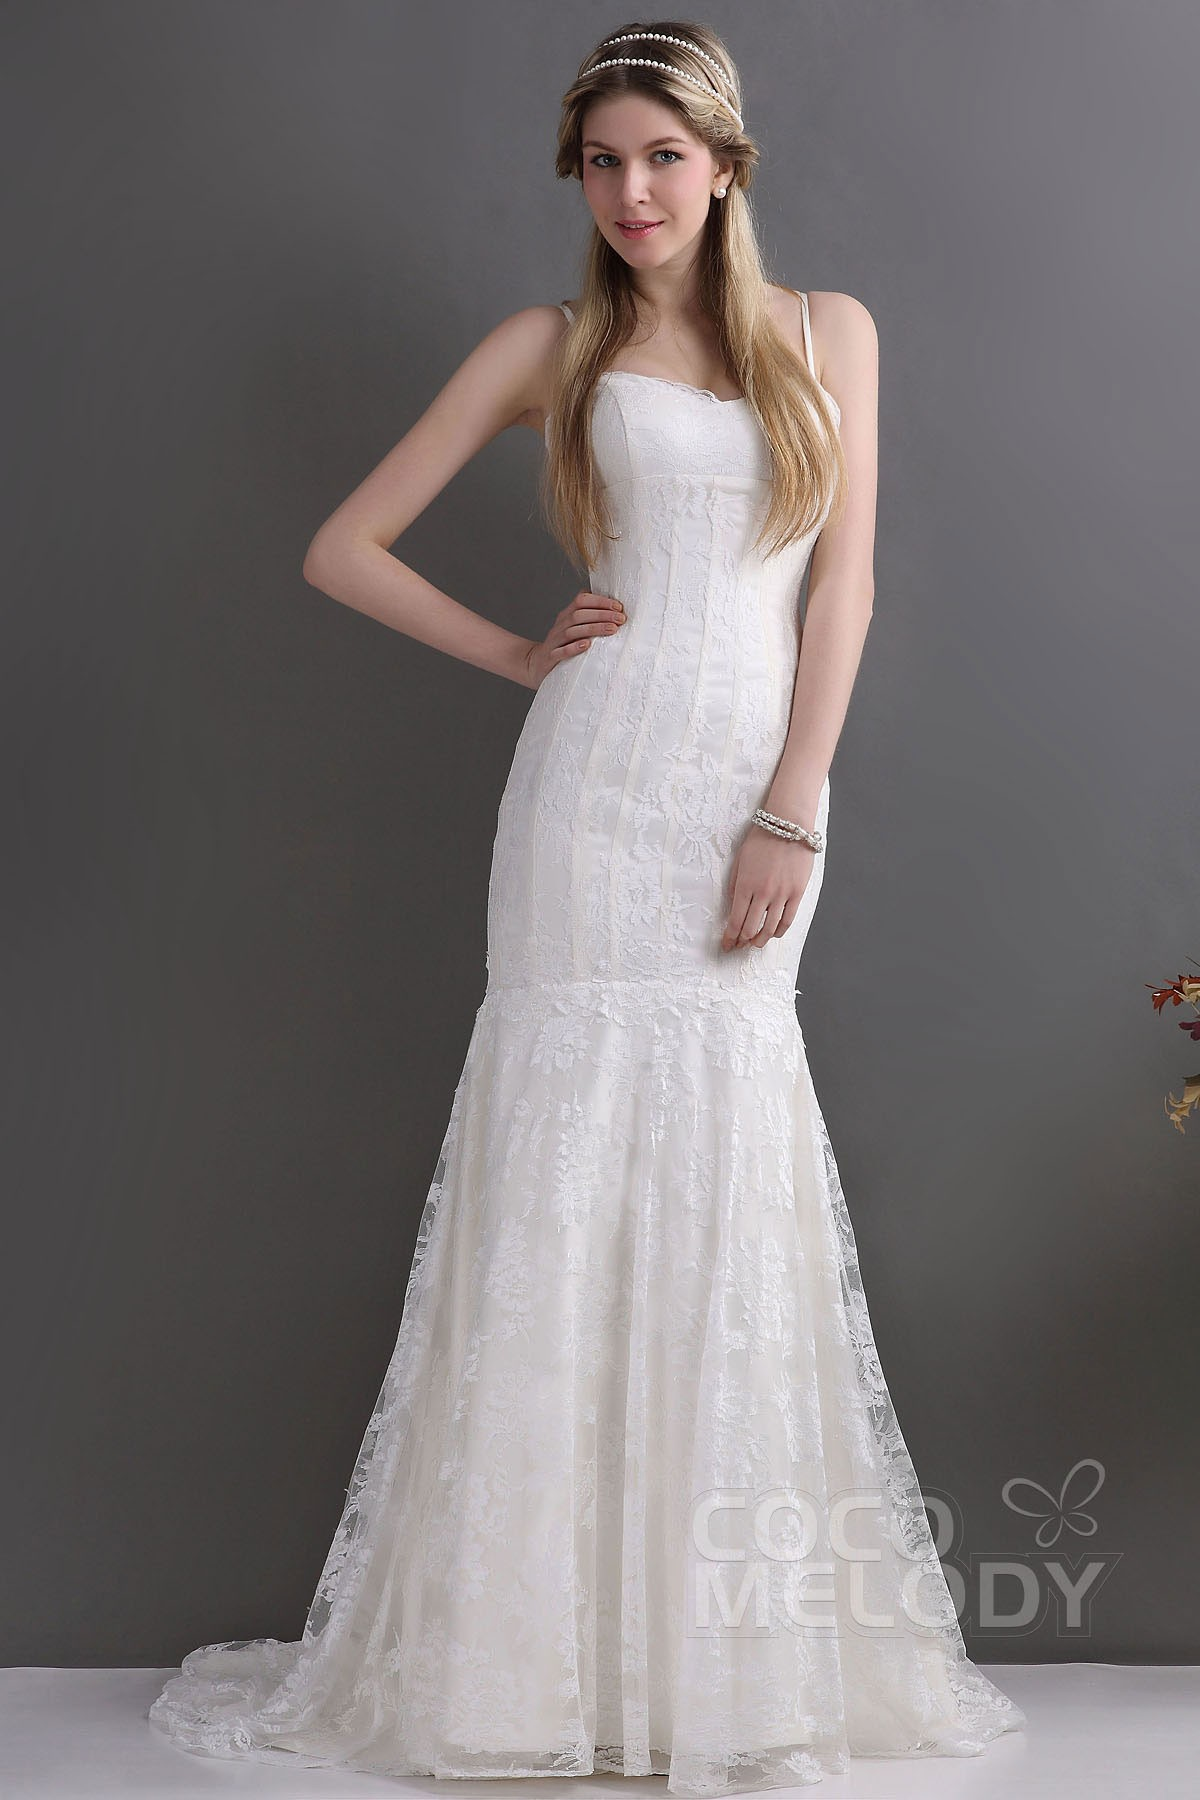 Cocomelody: Trumpet-Mermaid Spaghetti Strap Train Lace Wedding Dress ...